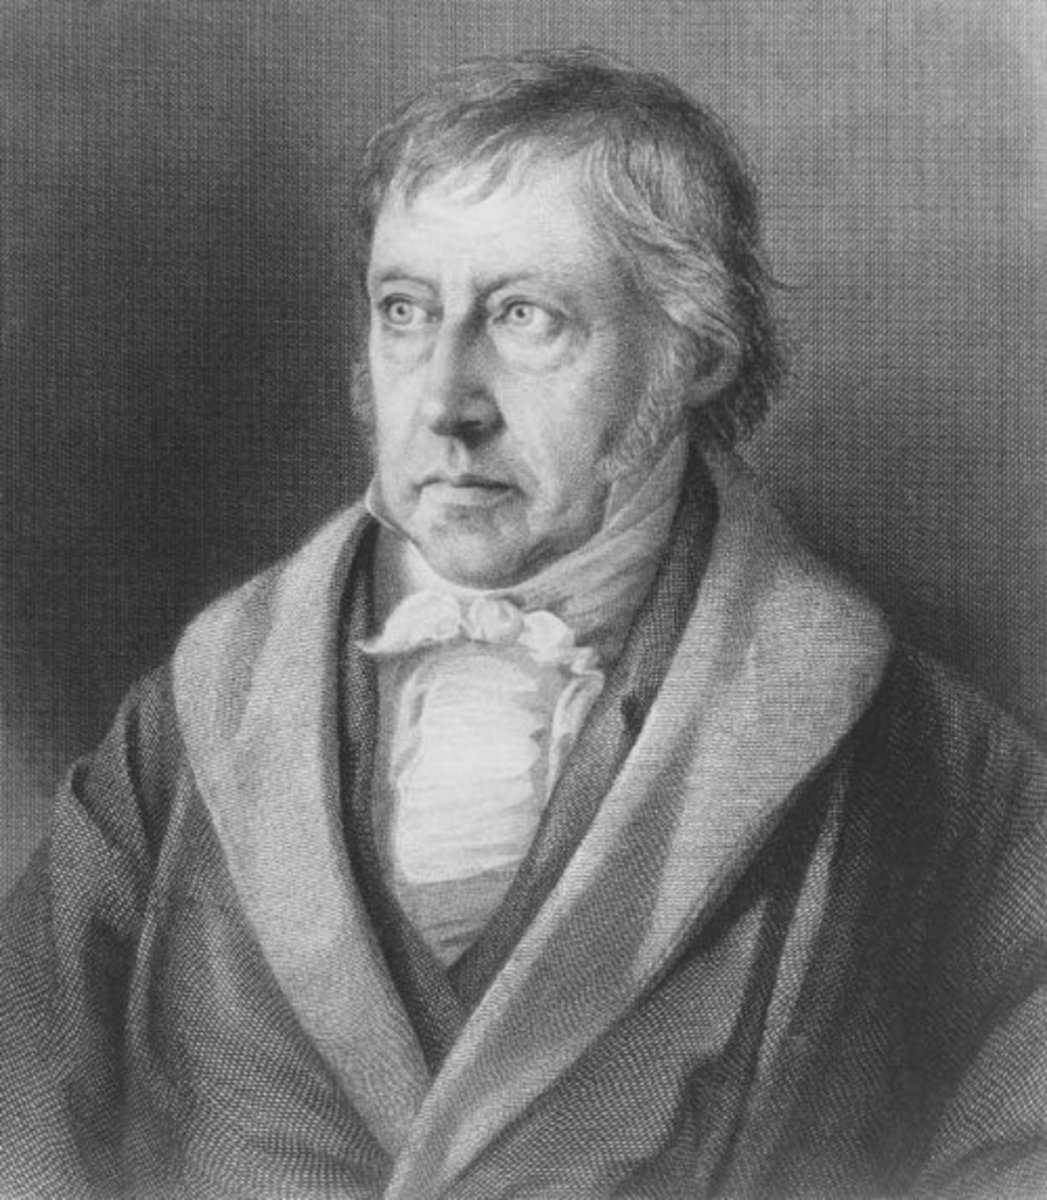 Key Concepts of the Philosophy of G. W. F. Hegel